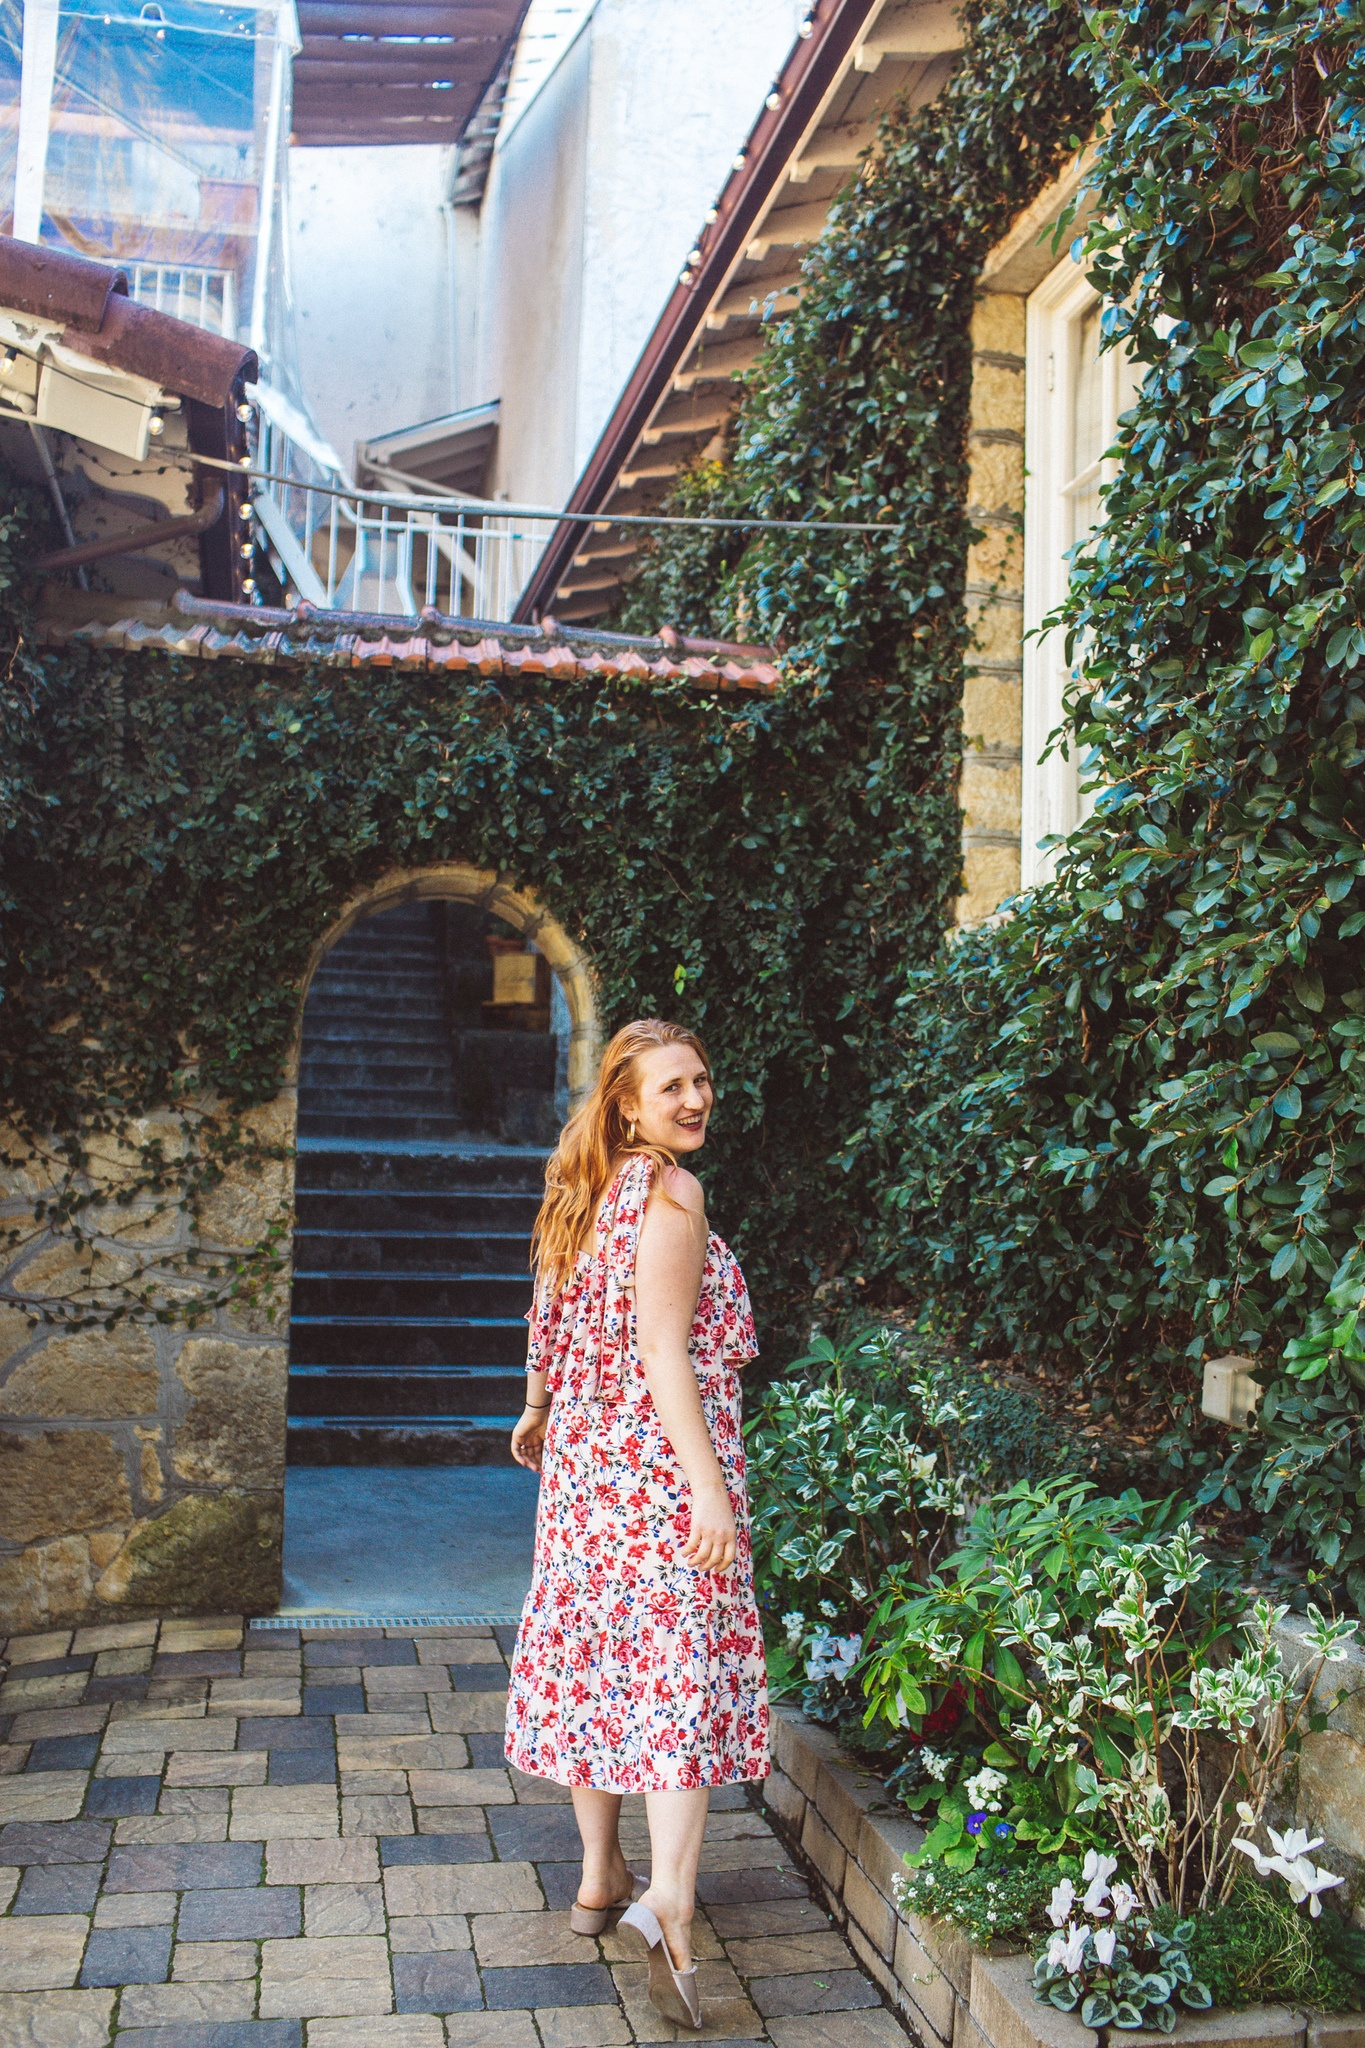 Woman in floral dress at Testarossa Winery in the Santa Cruz mountains